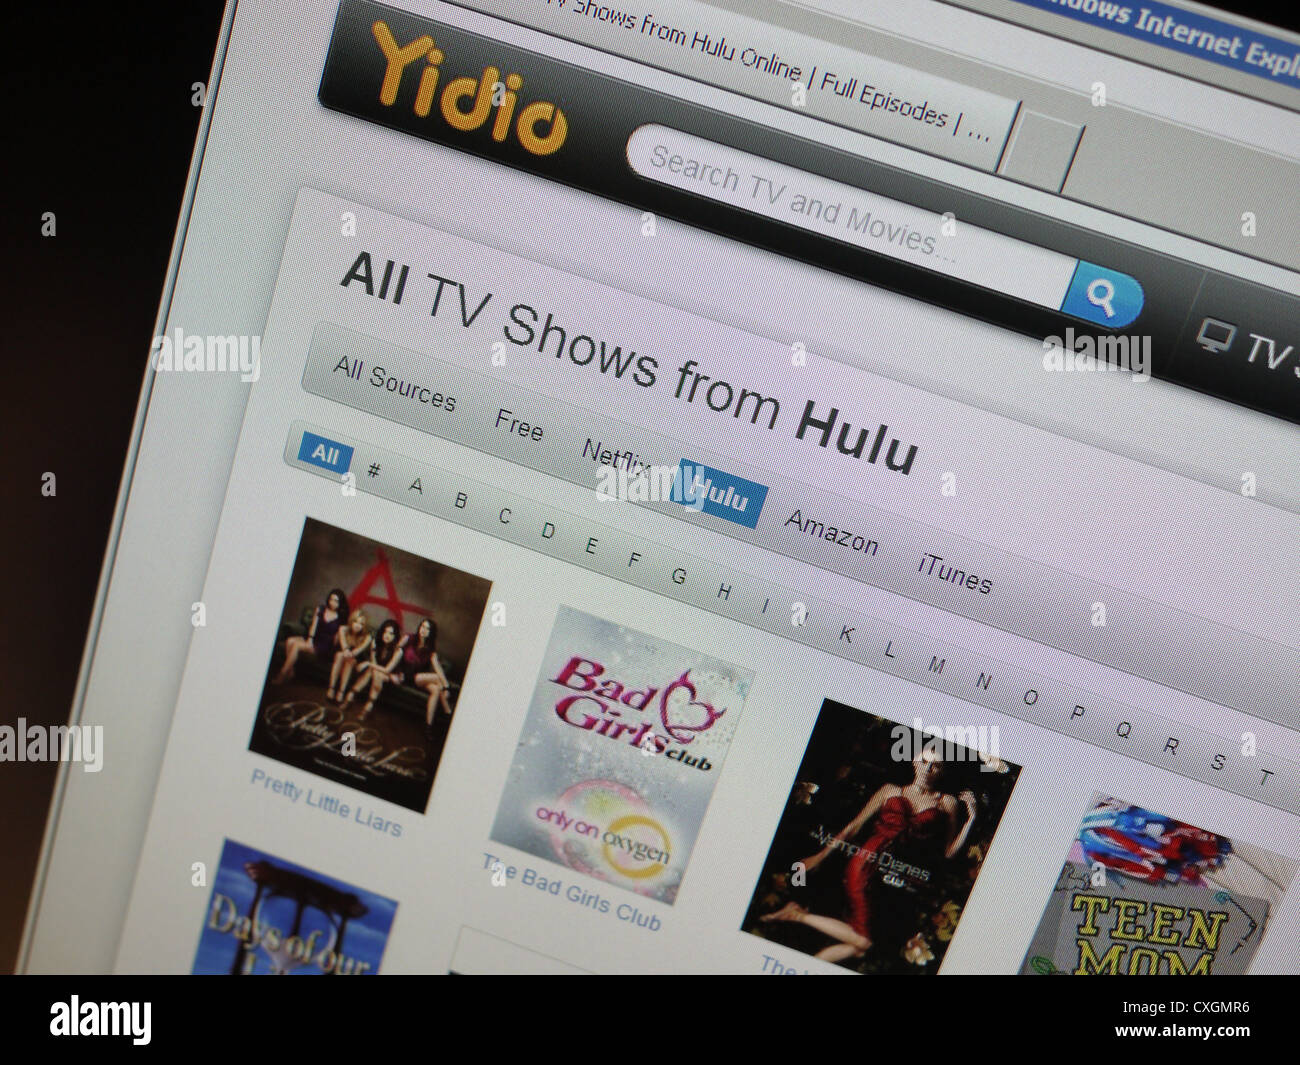 watch tv shows movies online streaming - Stock Image